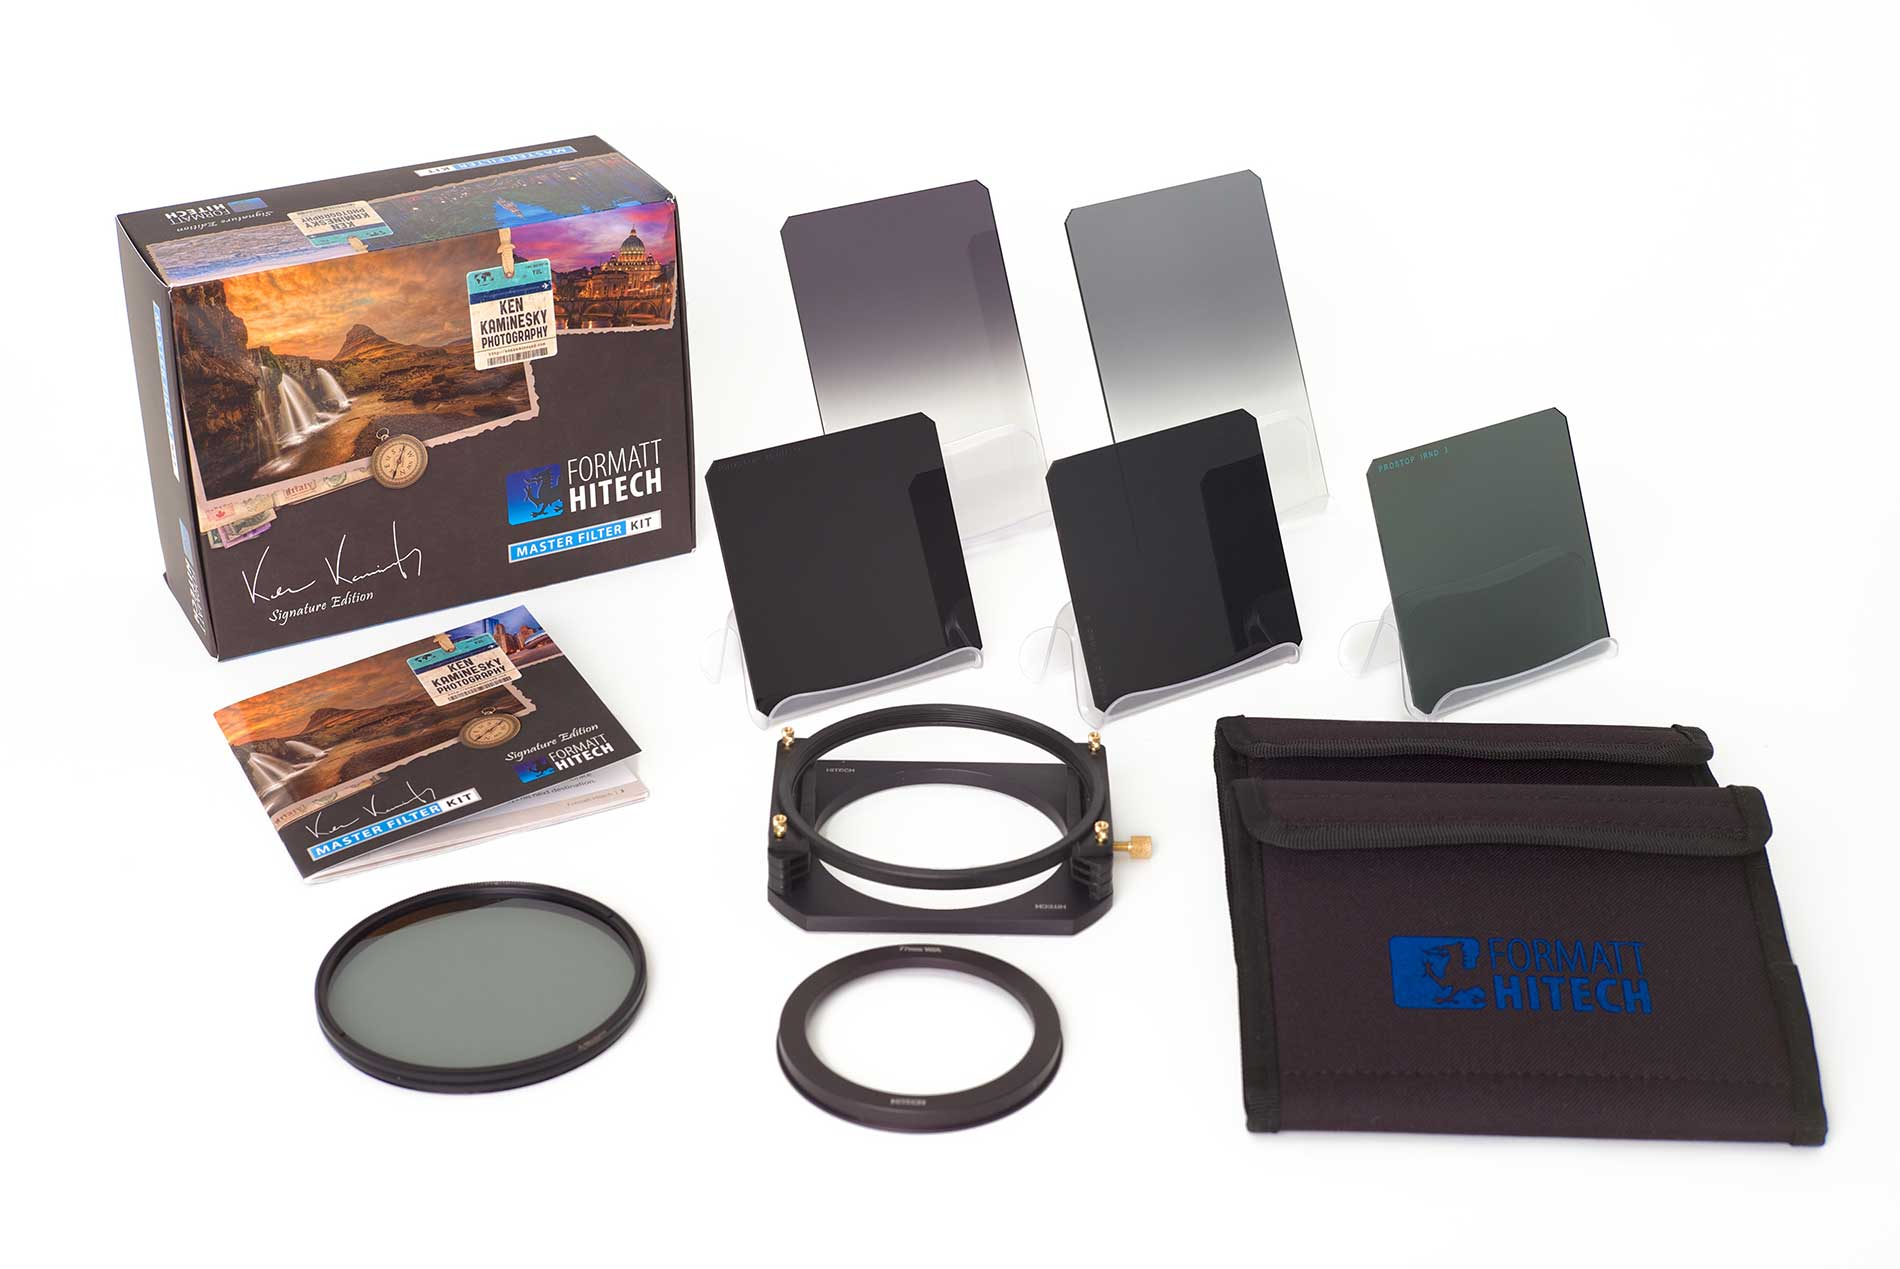 Ken Kaminesky Master Filter Kit from Formatt-Hitech